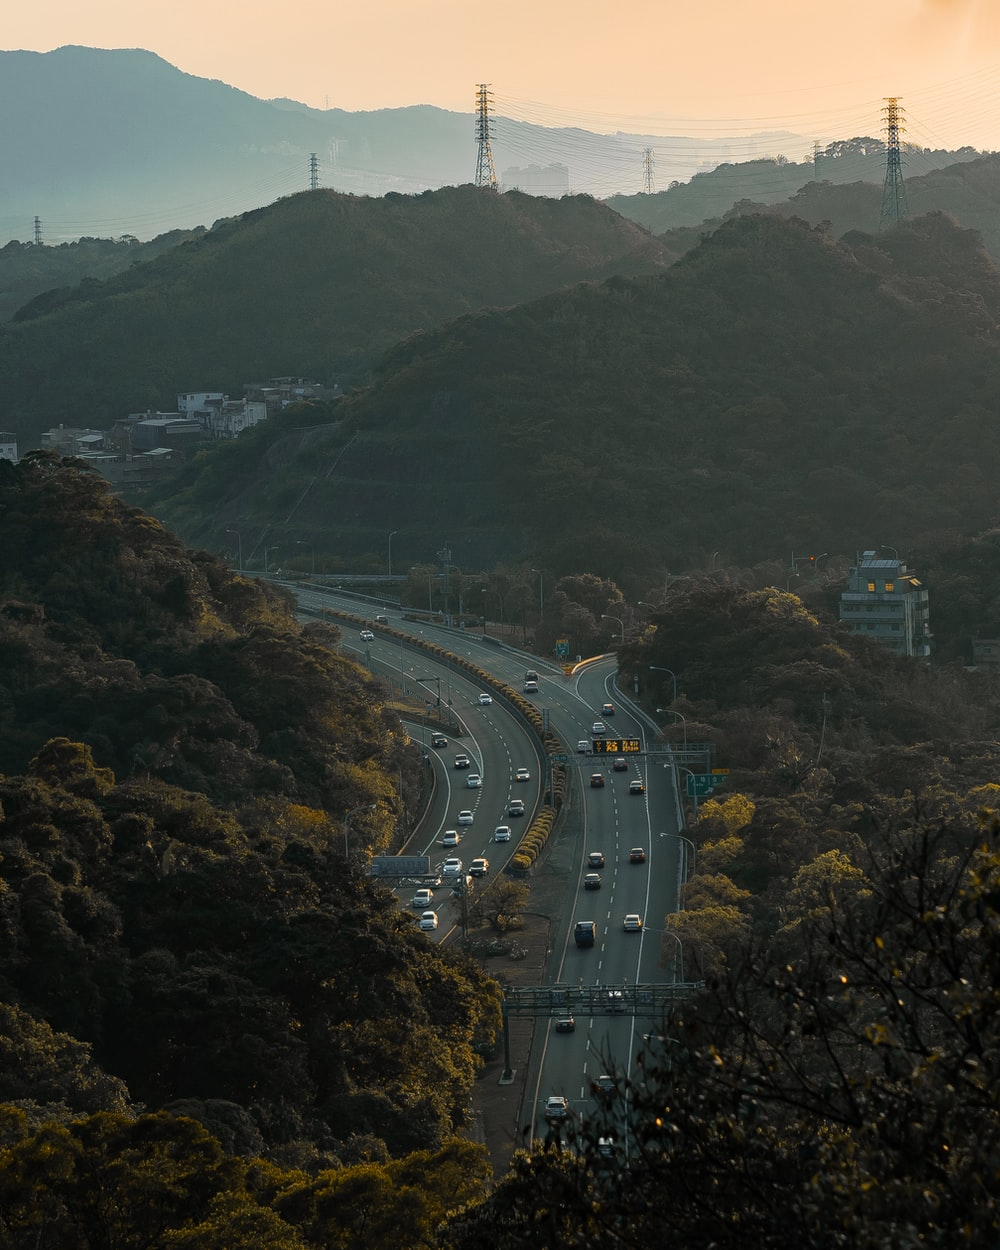 cars on road near mountain during daytime